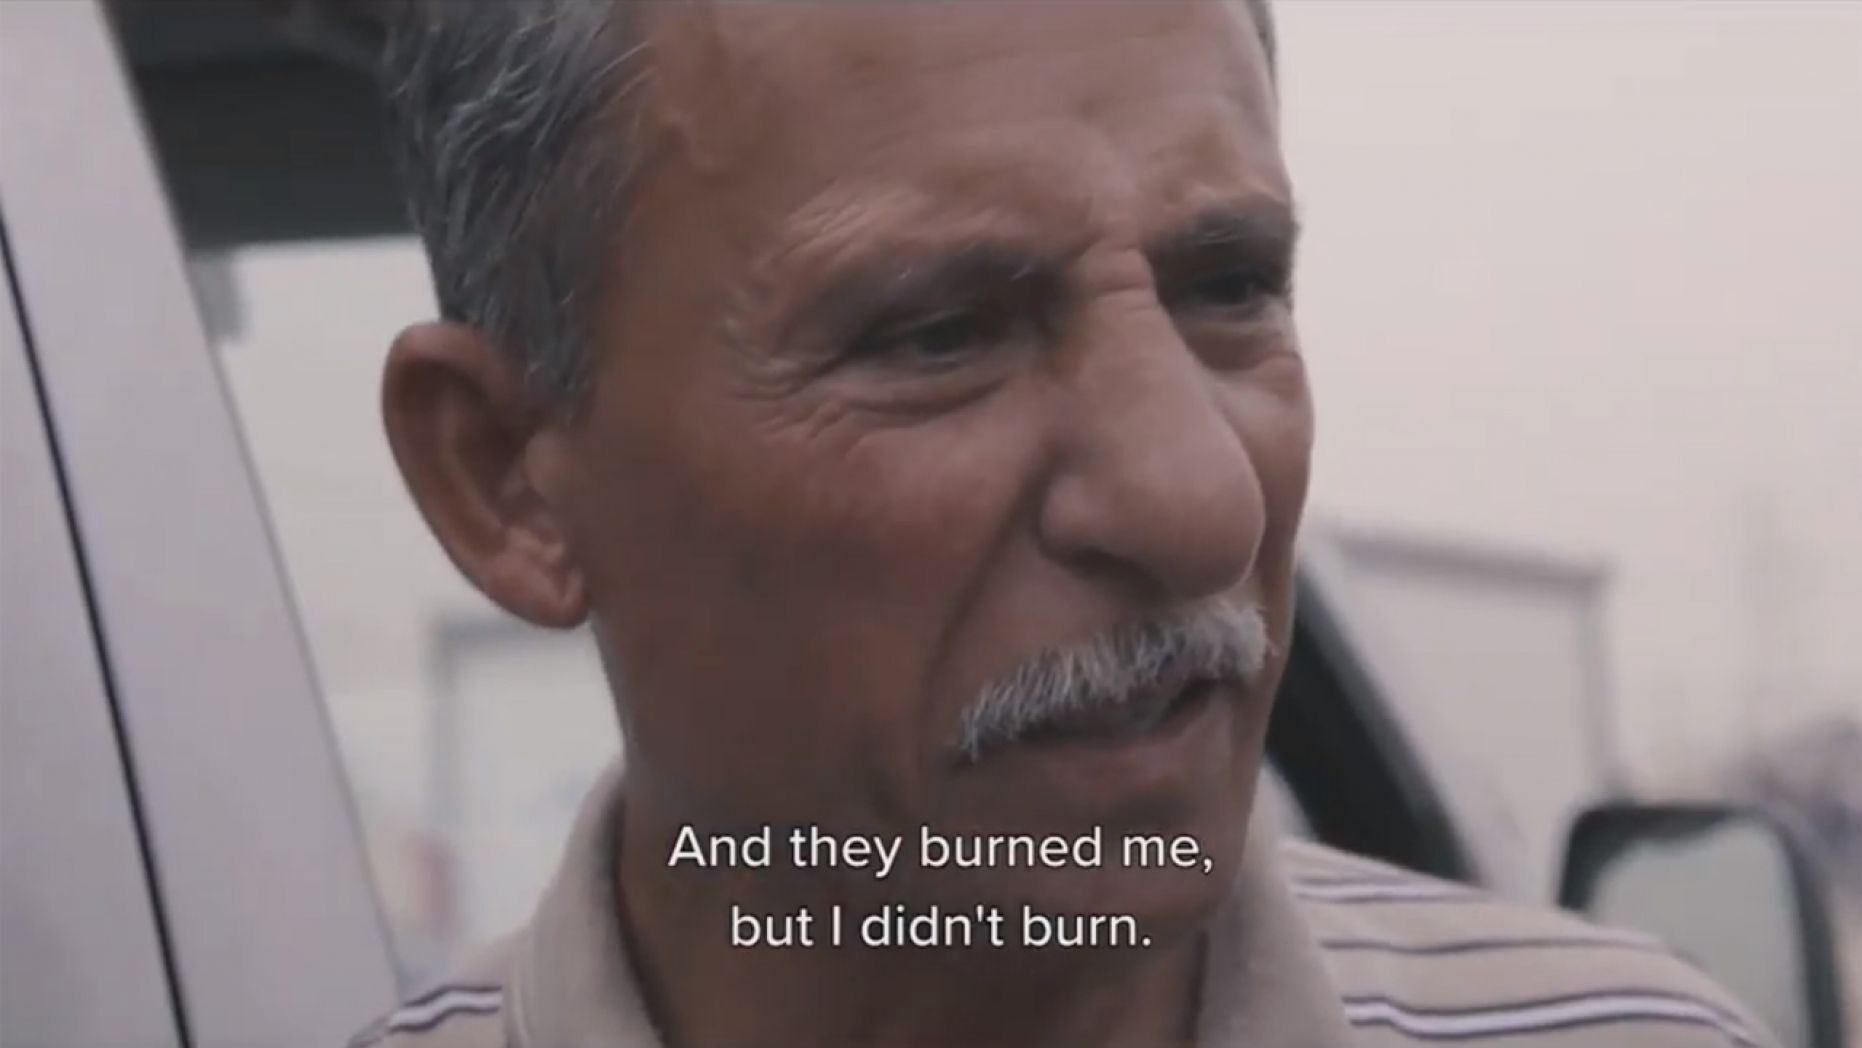 Iraqi Christian burned alive by ISIS three times miraculously survives, sees Jesus in vision - The Christian Post